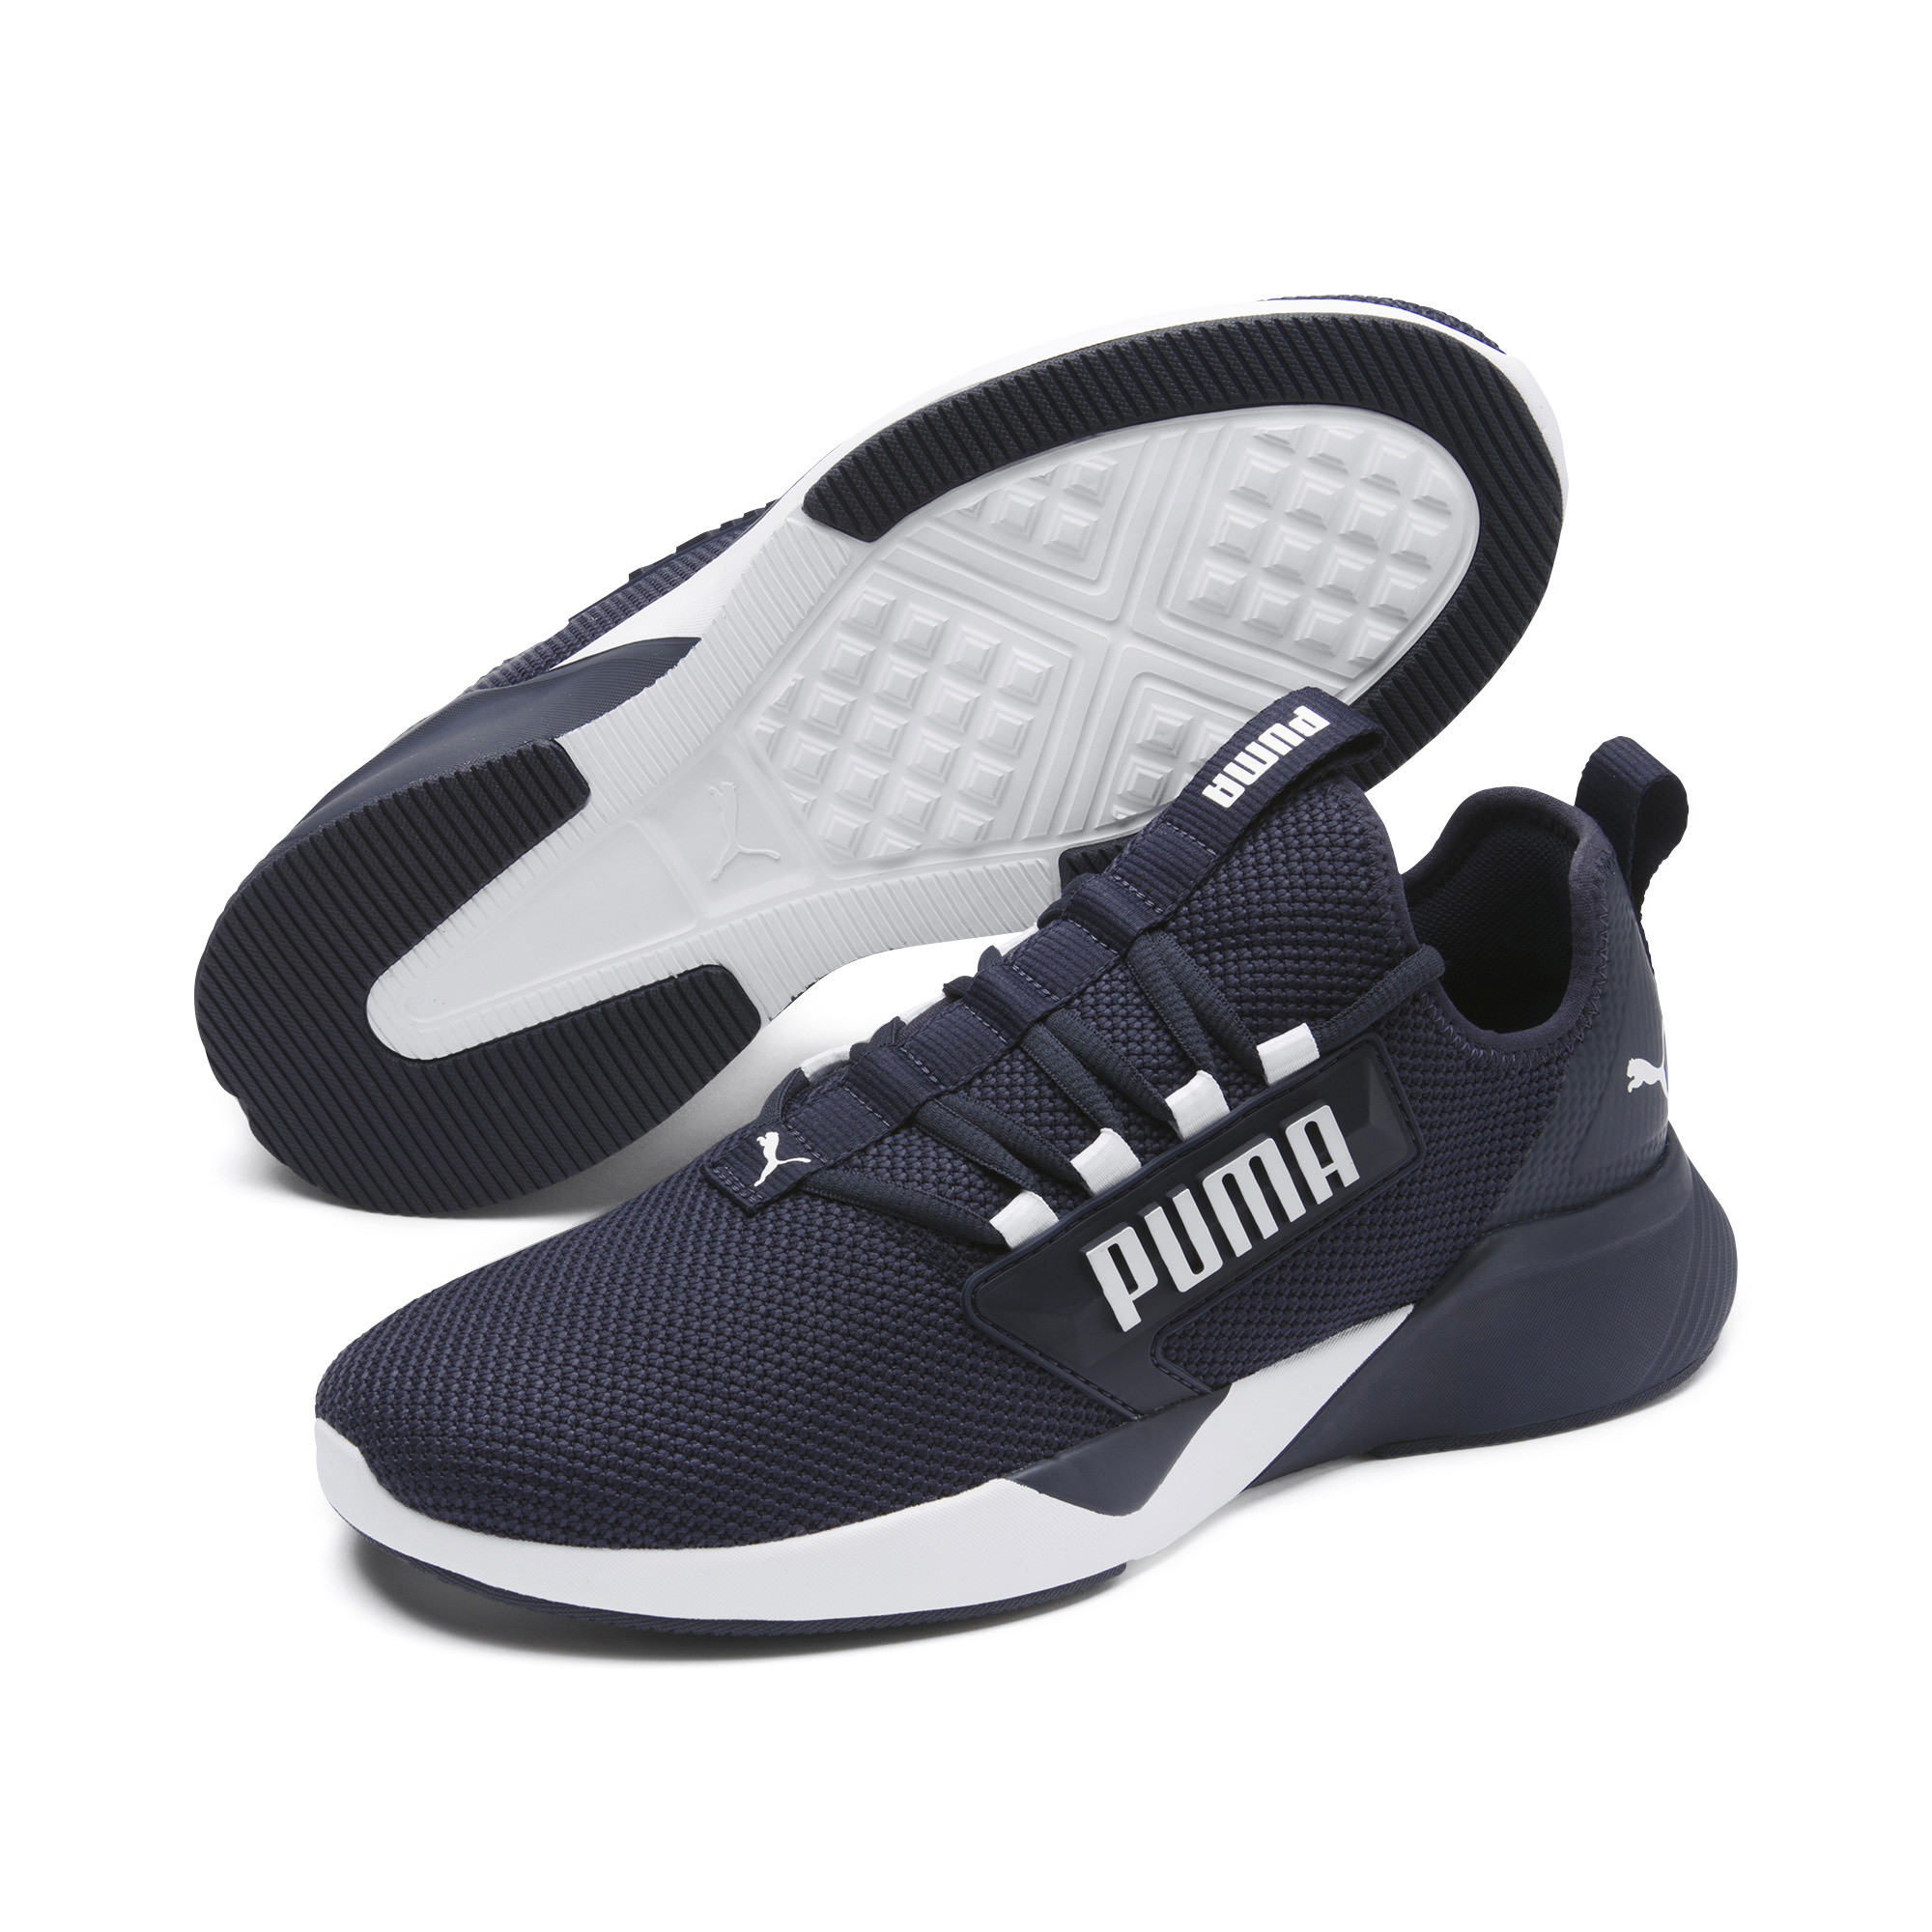 PUMA-Men-039-s-Retaliate-Training-Shoes